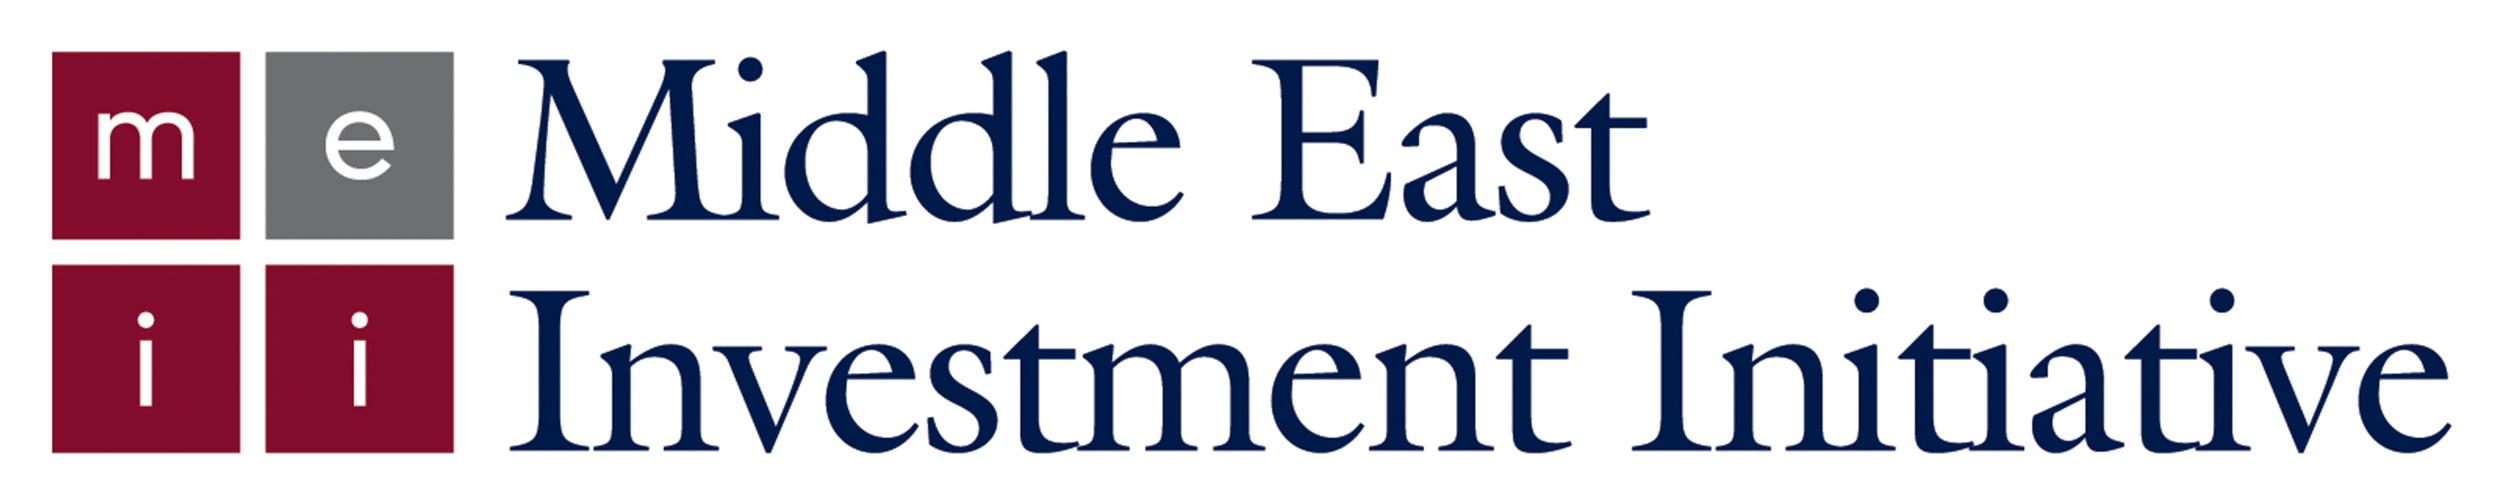 middle east investment opportunities